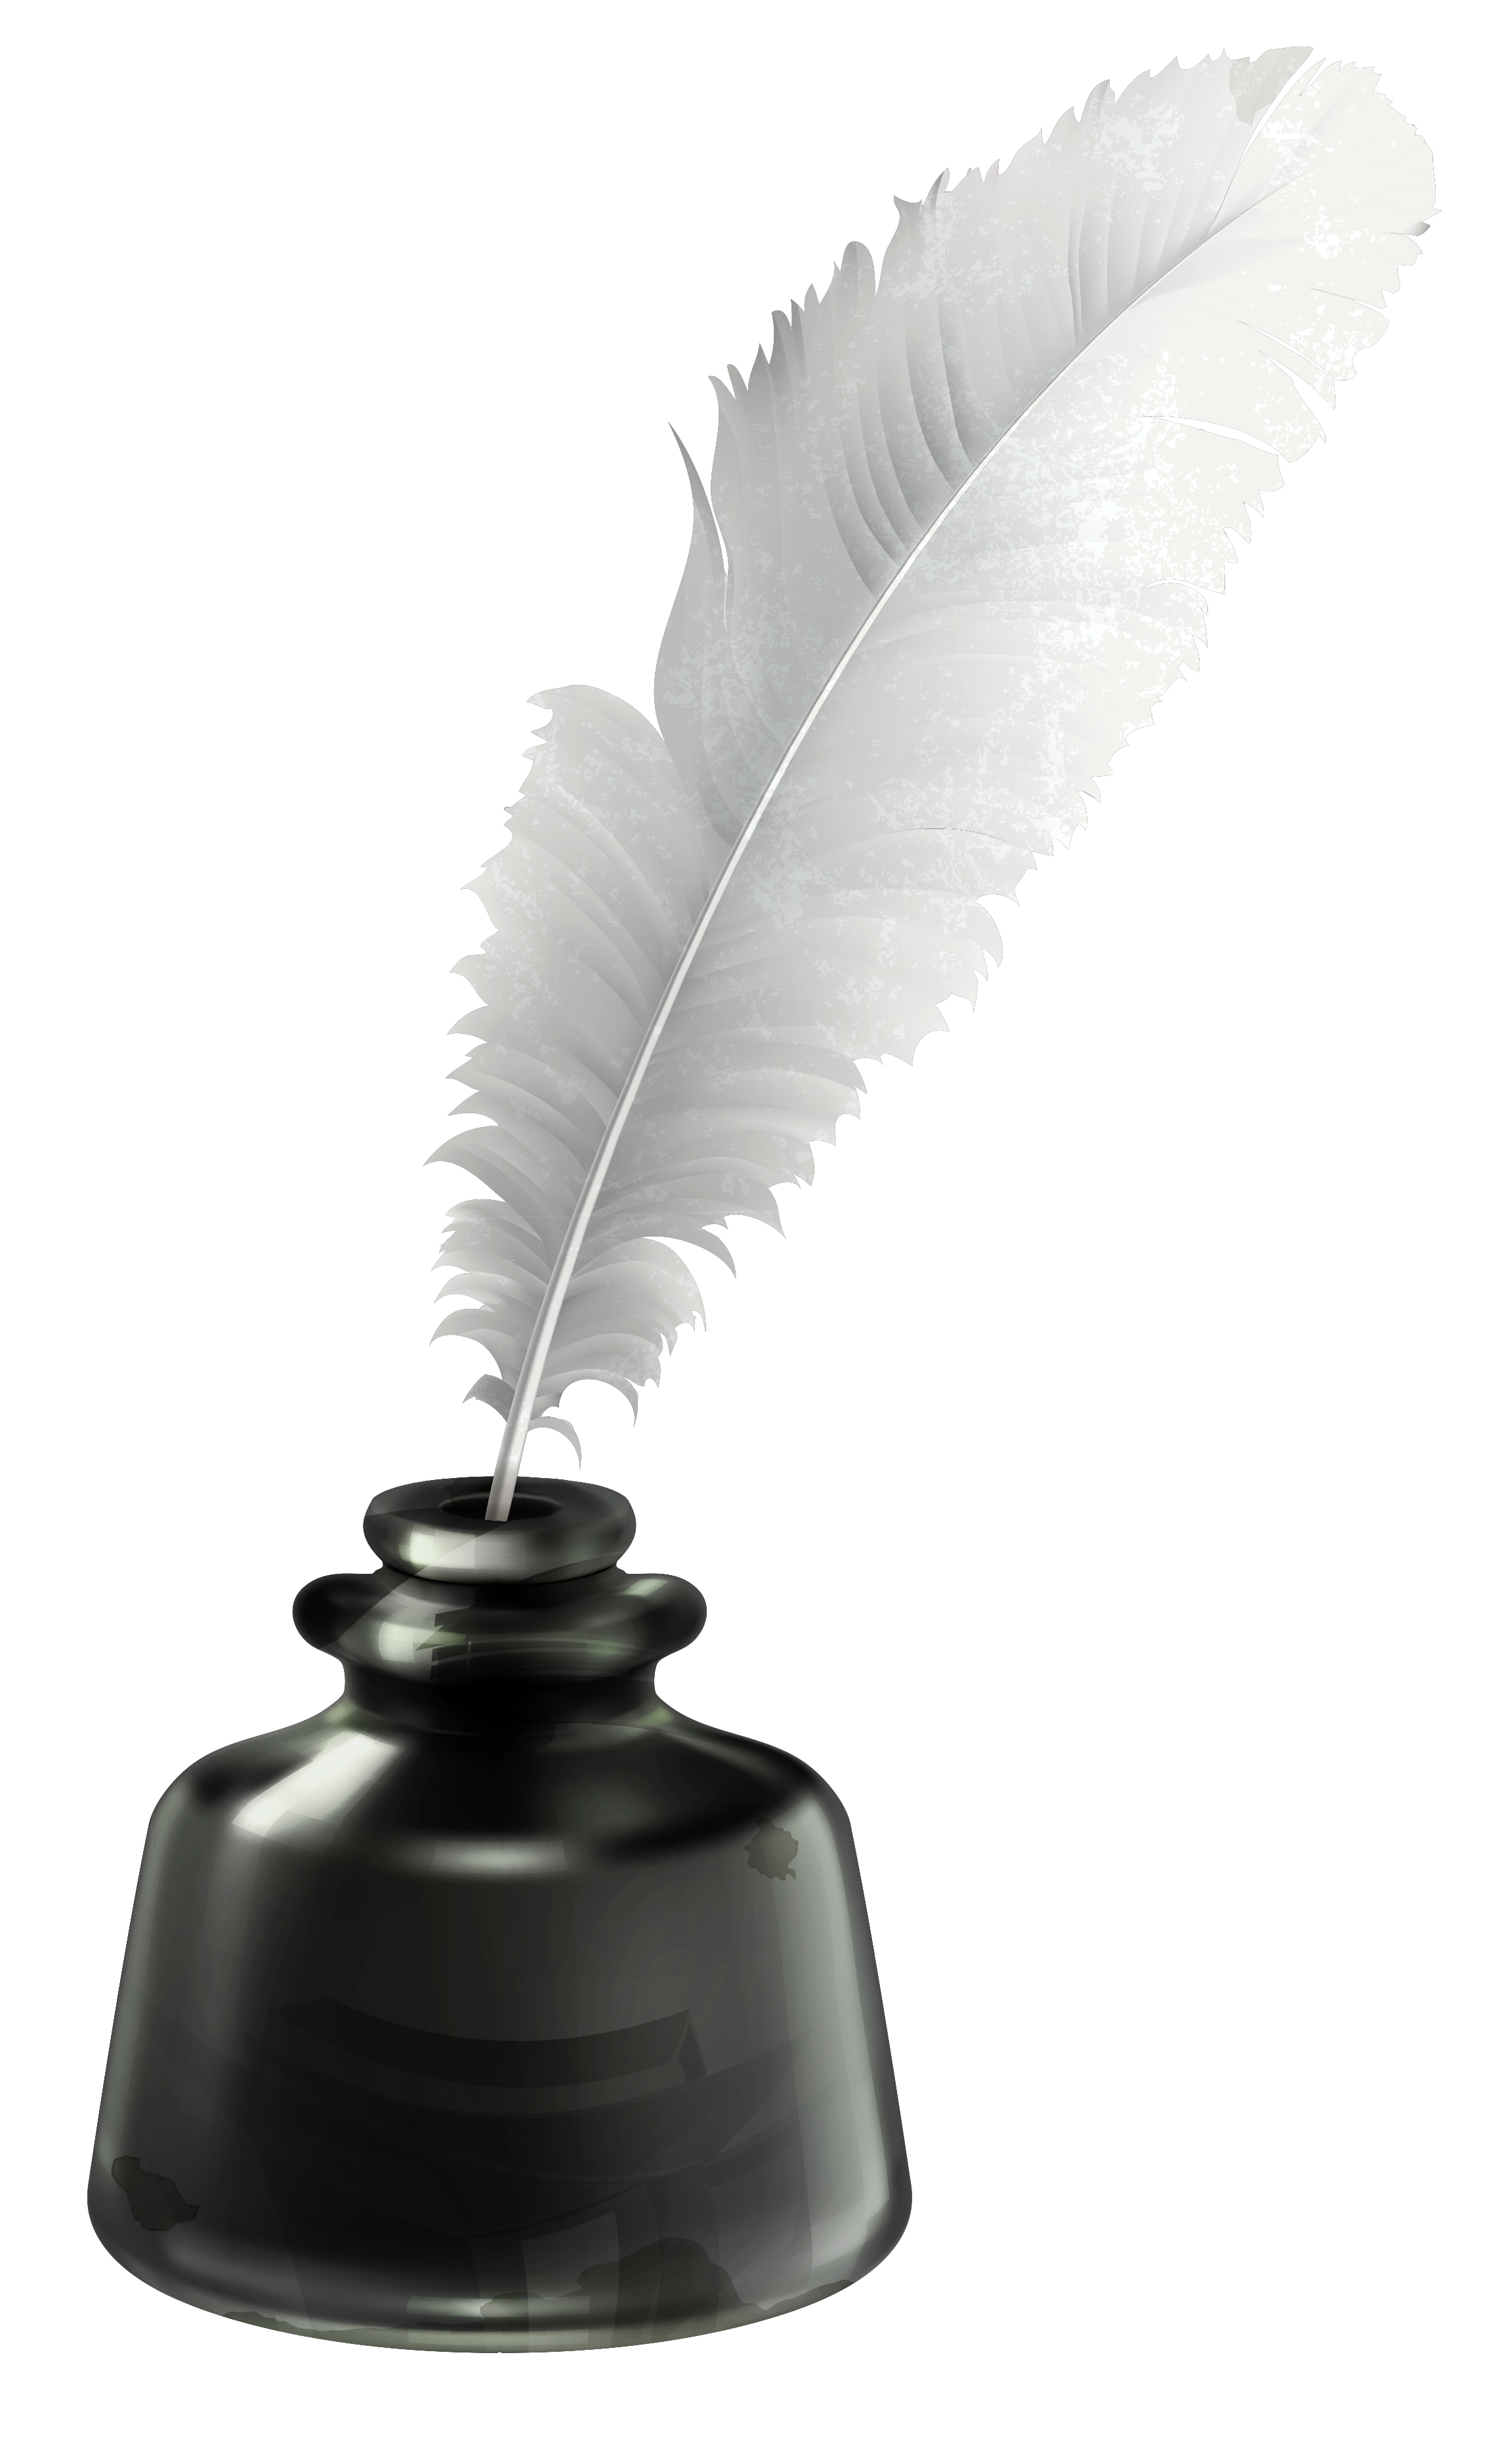 Ink Pot Inkwell PNG HD Quality